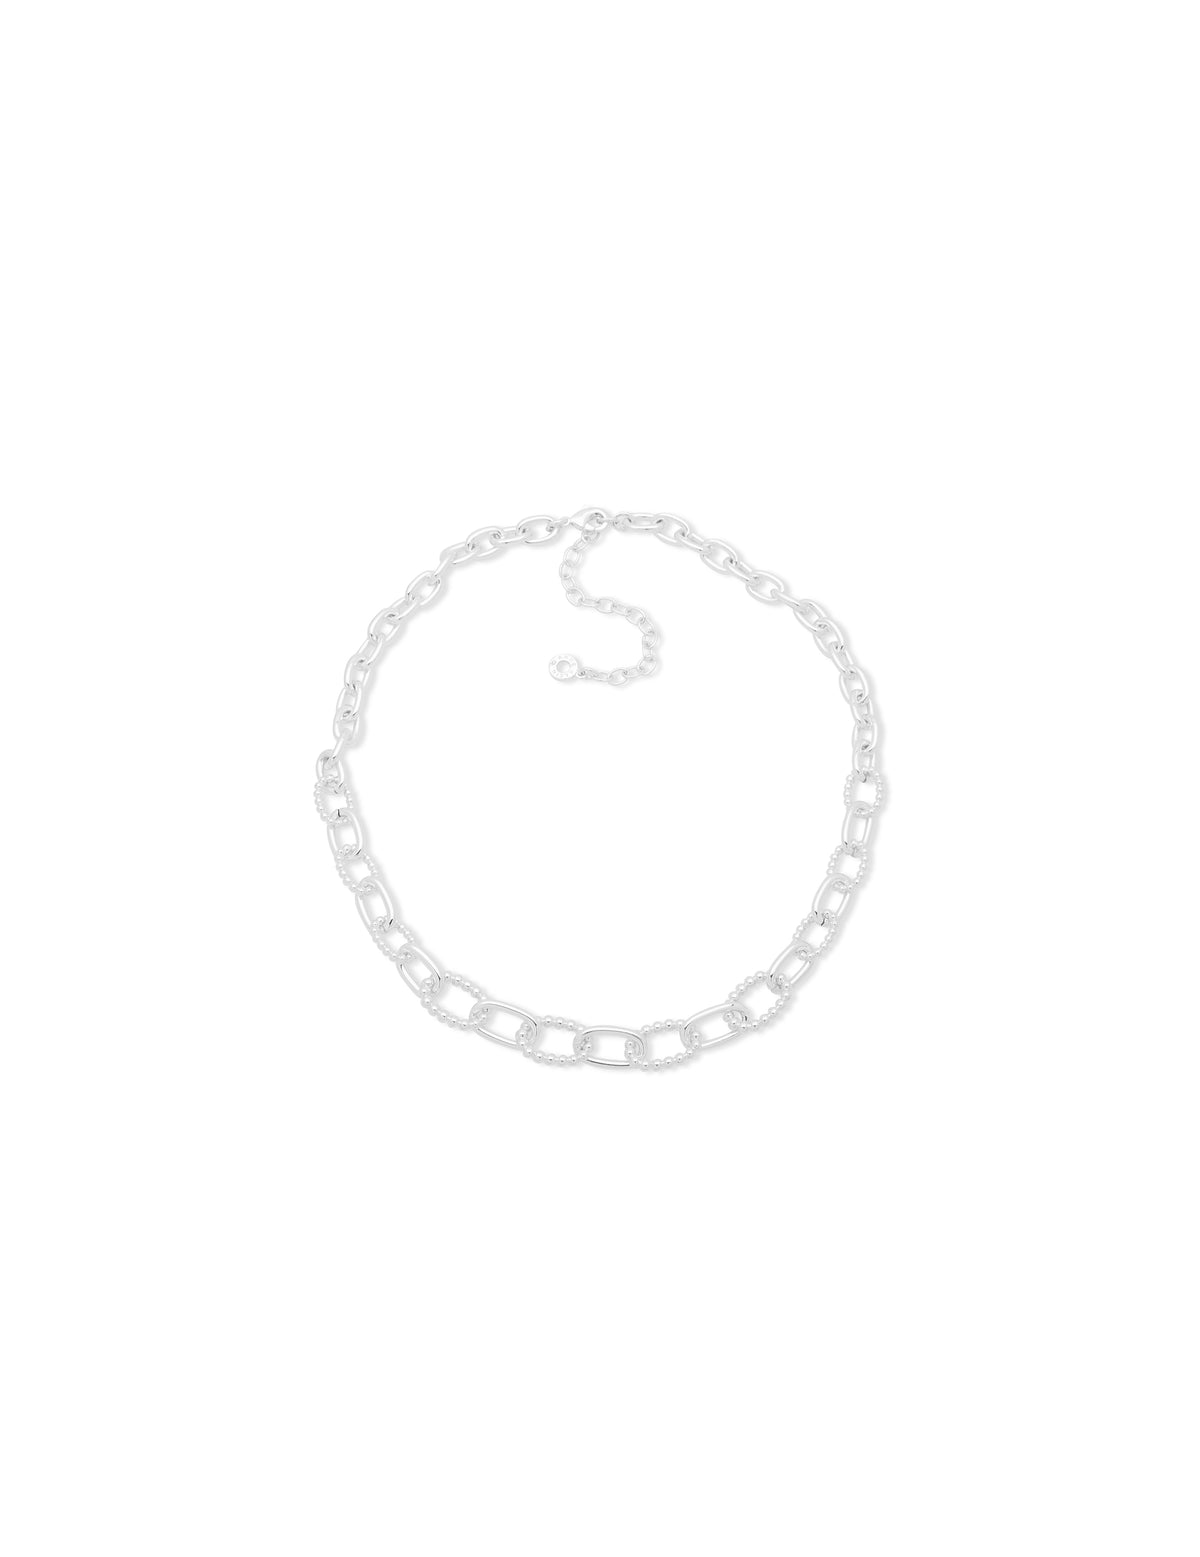 Sliver-Tone Chain Link Necklace